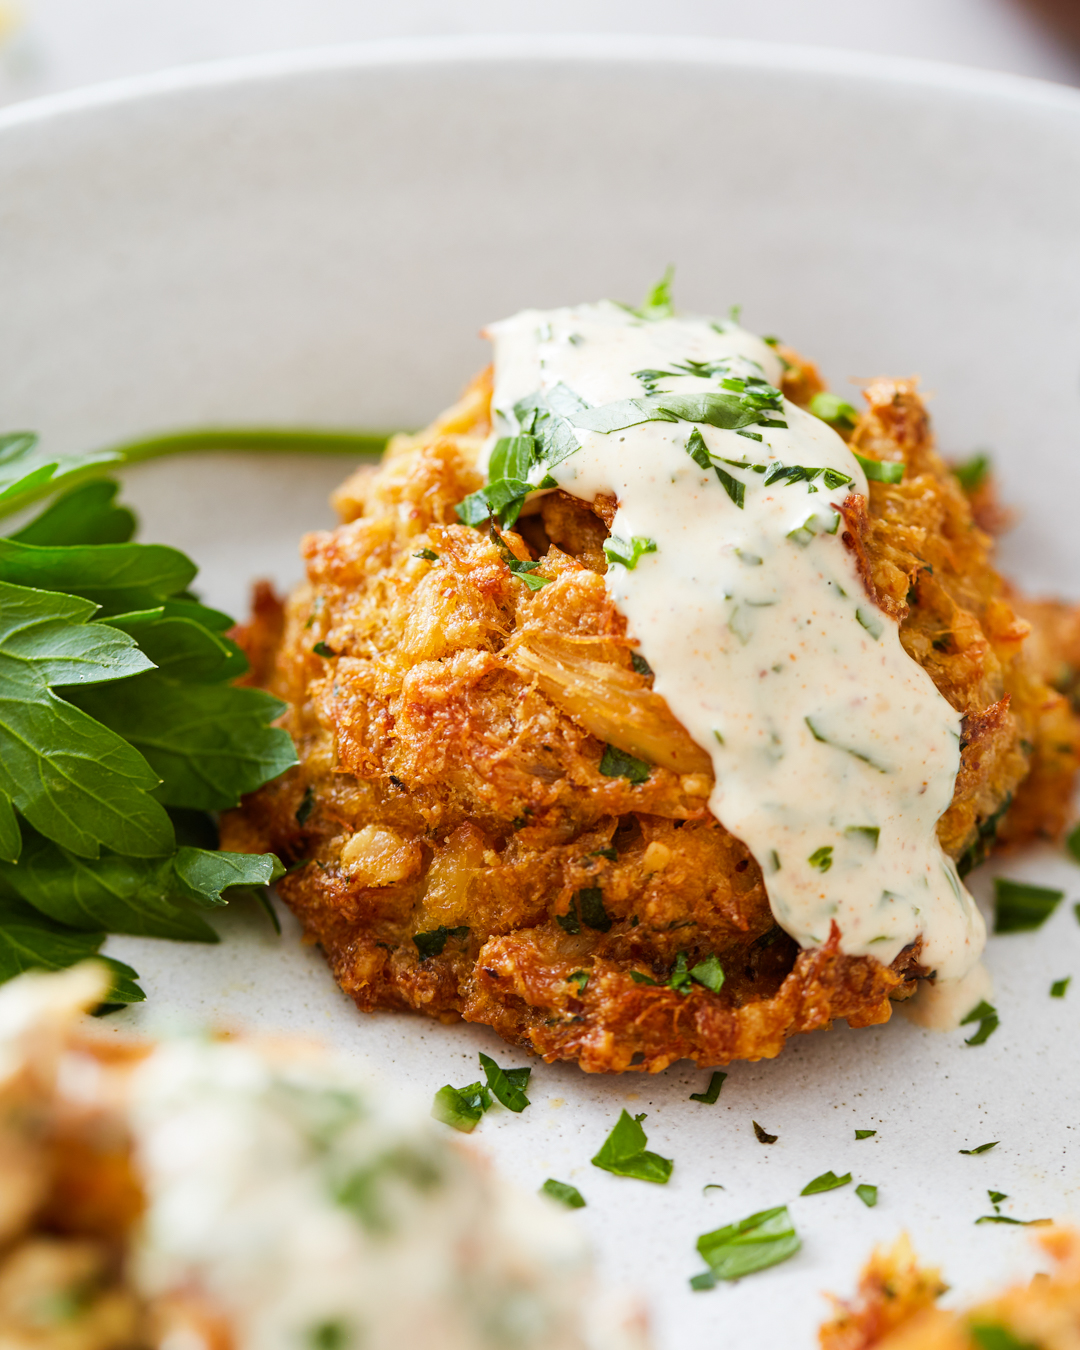 Best Ever Grain-Free Crab Cakes with Dijonnaise